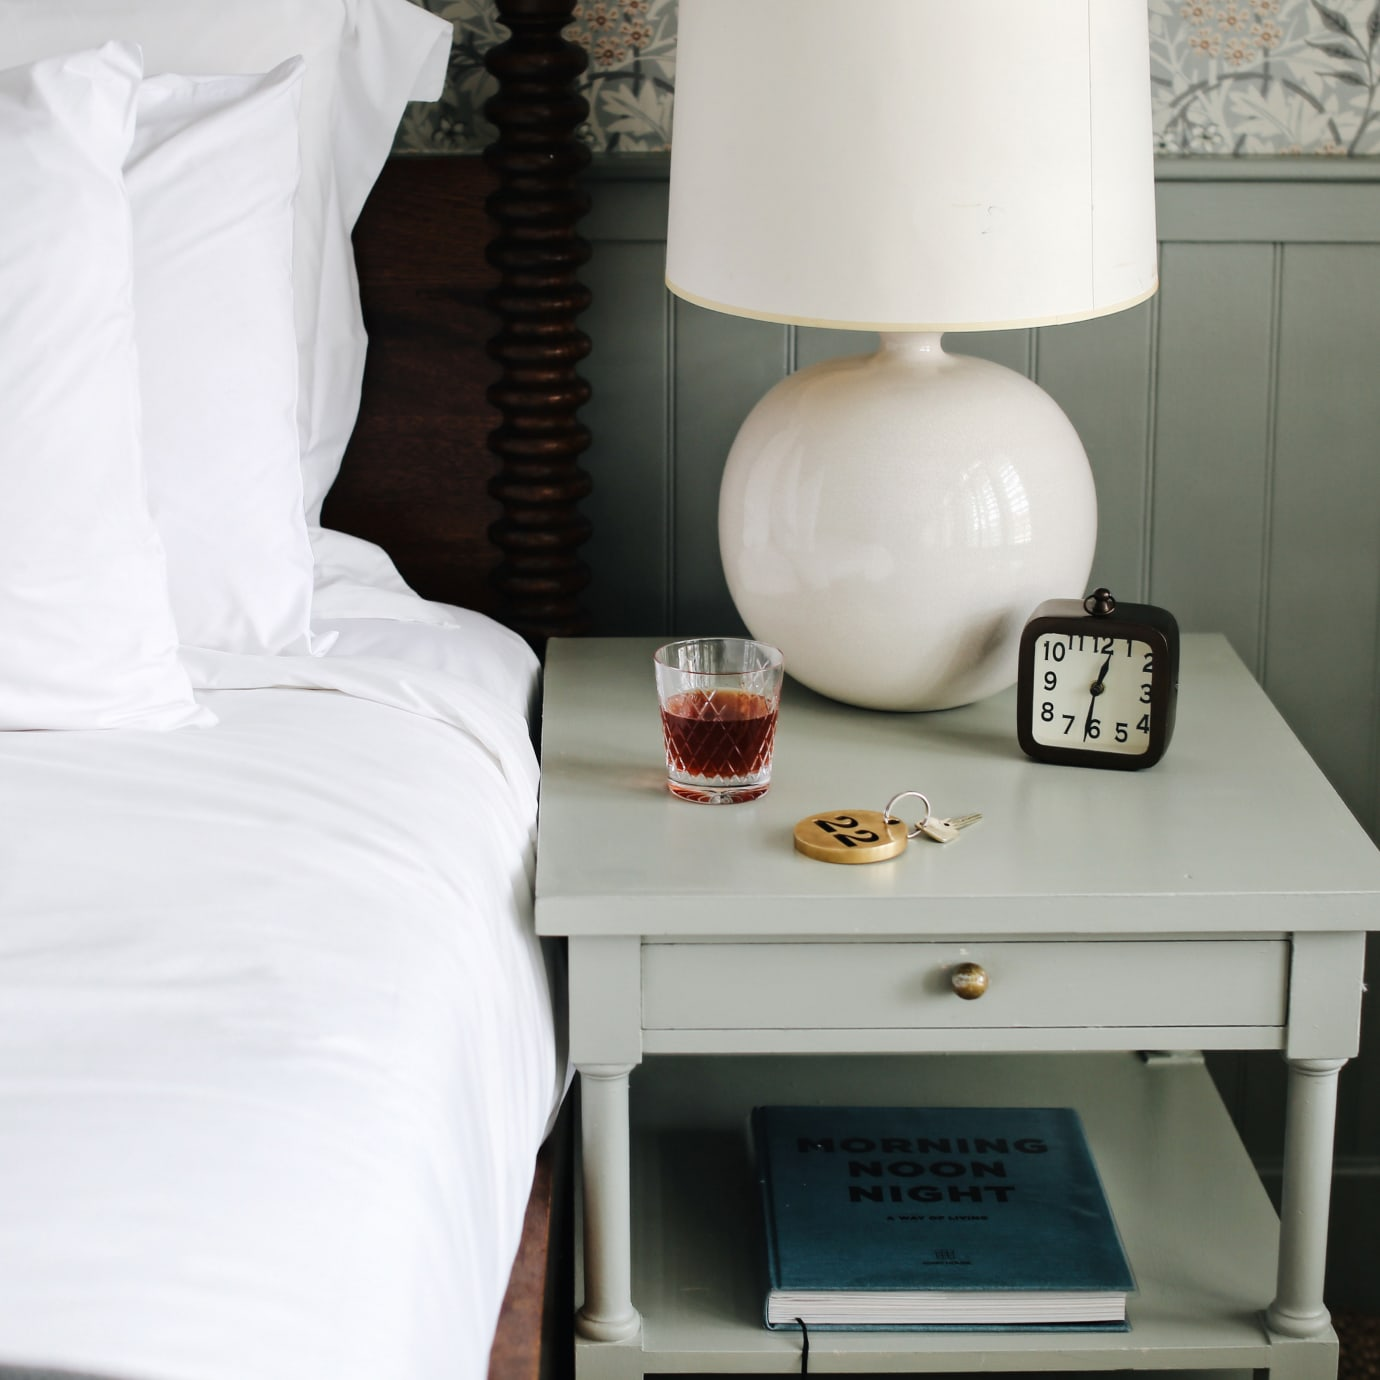 The side of a bed and a bedside table with a drink in a cut crystal glass on it.